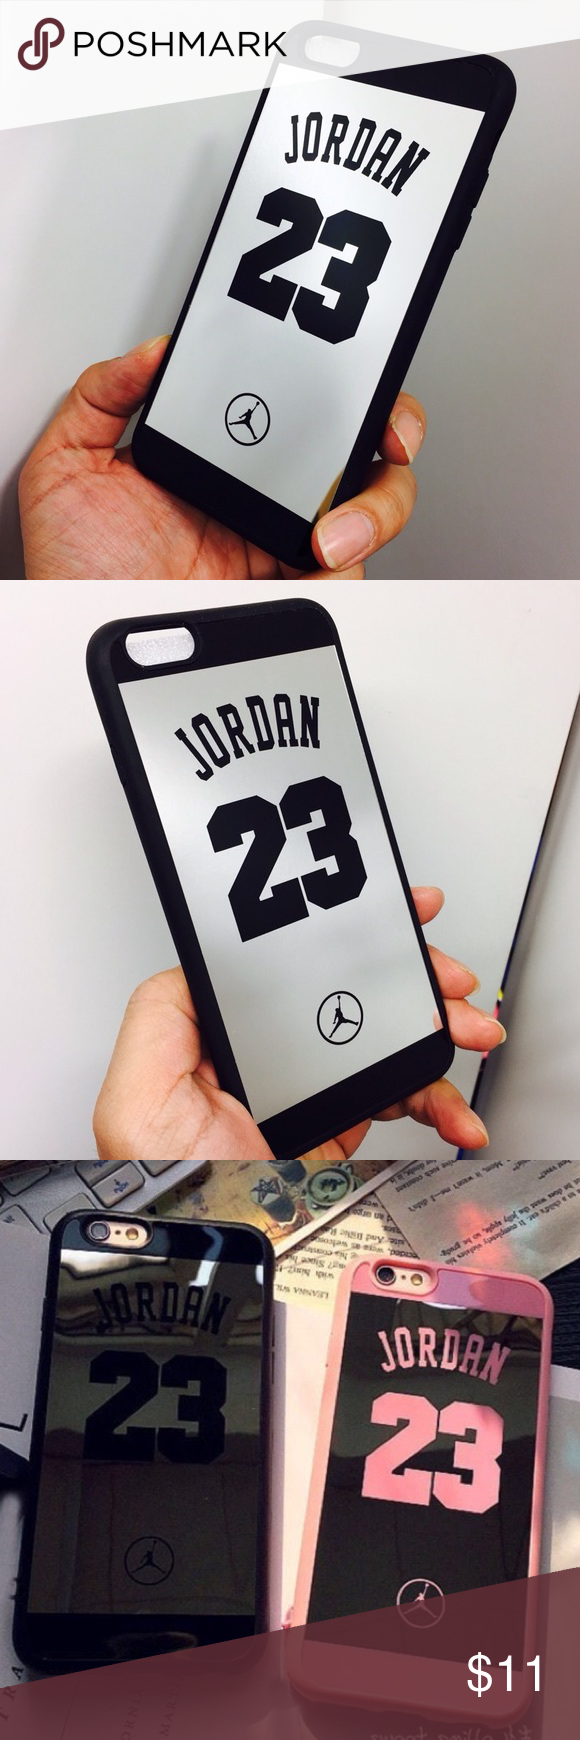 55d6ef719385 iPhone 6 6s Shock defense 23 Jordan mirror case Durable fashion shock  defense Customizes design